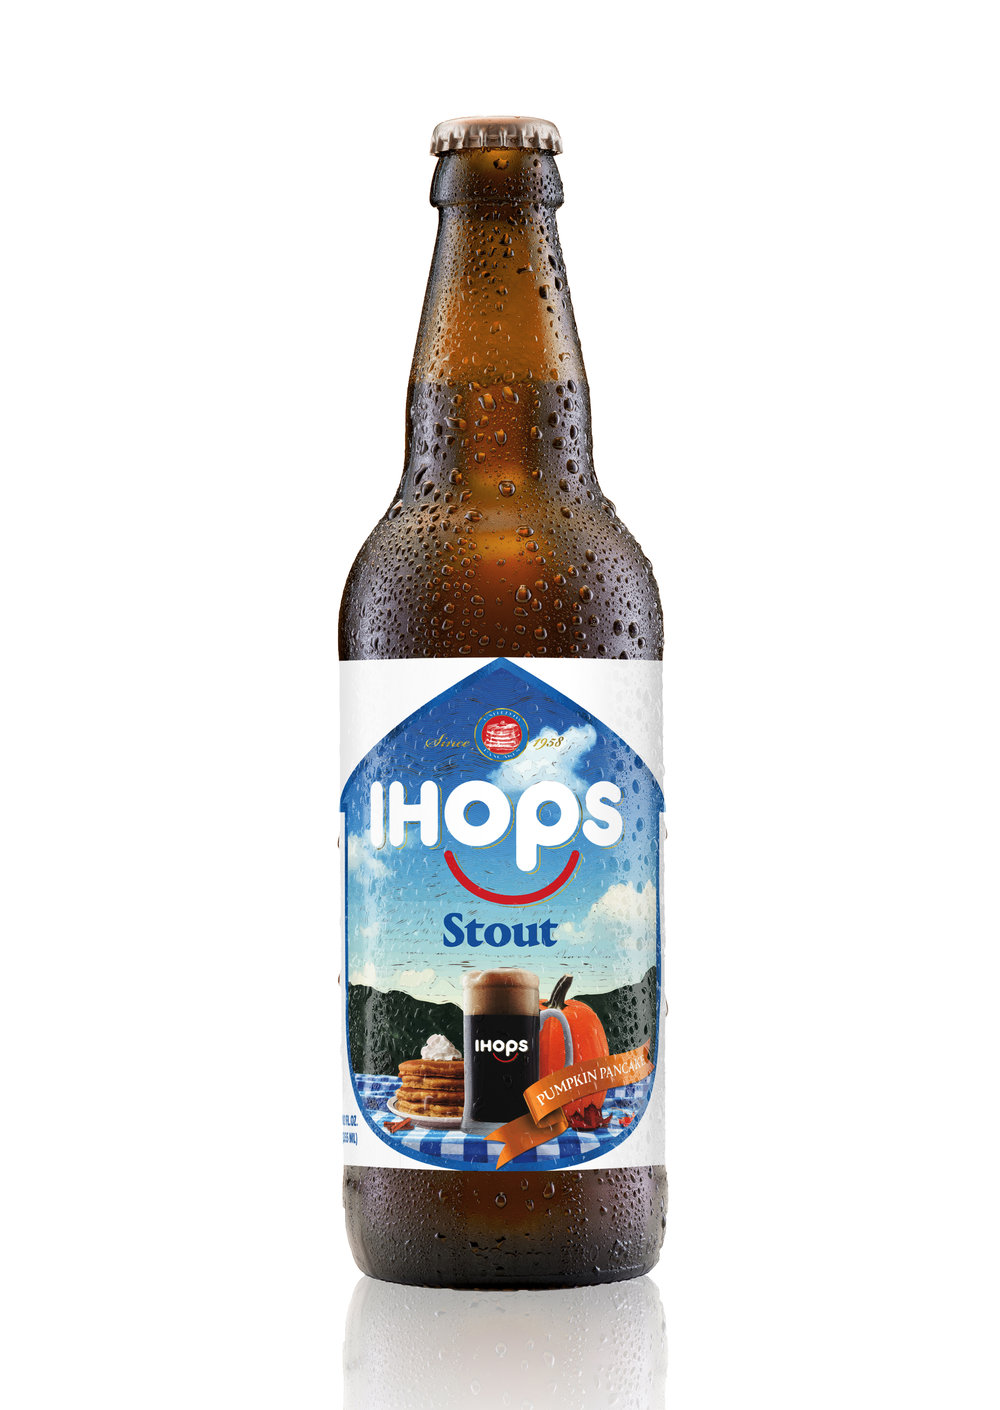 IHOPS_Bottle.jpg